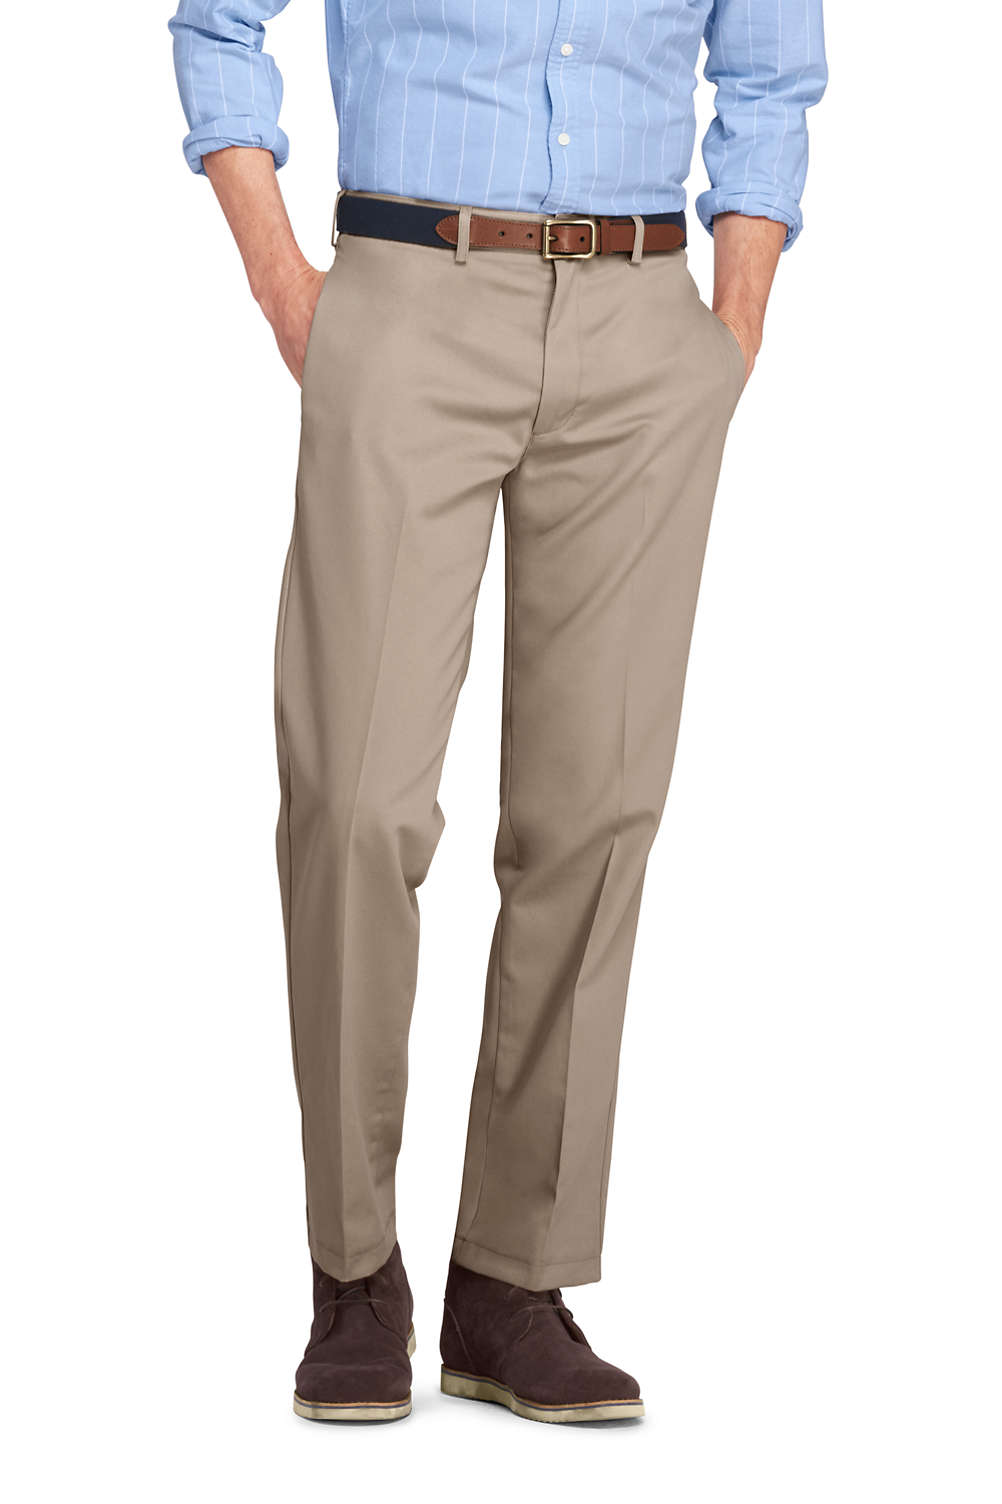 f5e874da4a6 Men S Tailored Fit No Iron Chinos From Lands End